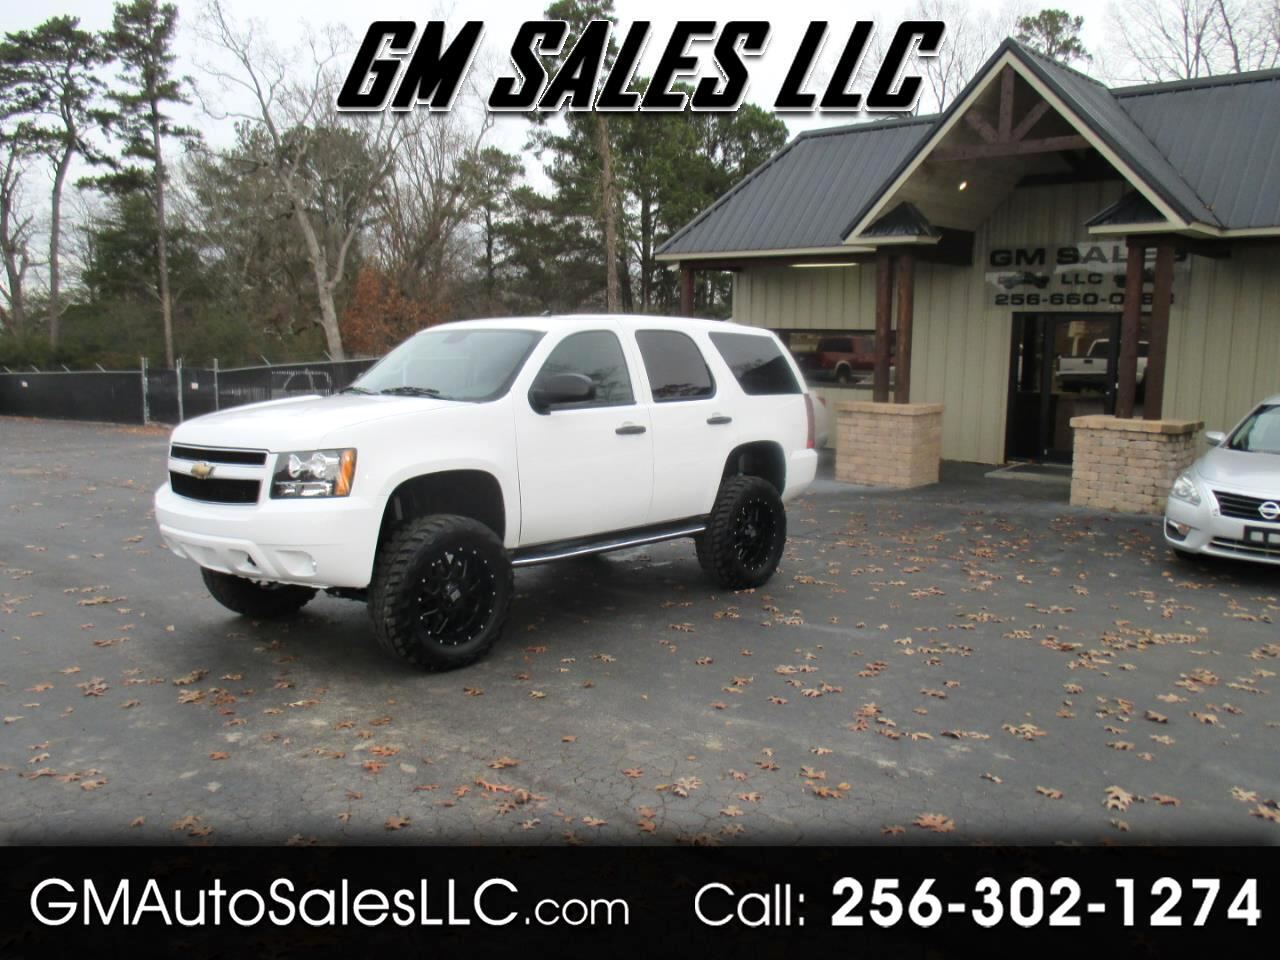 2010 Chevrolet Tahoe 4WD 4dr 1500 Special Service Vehicle